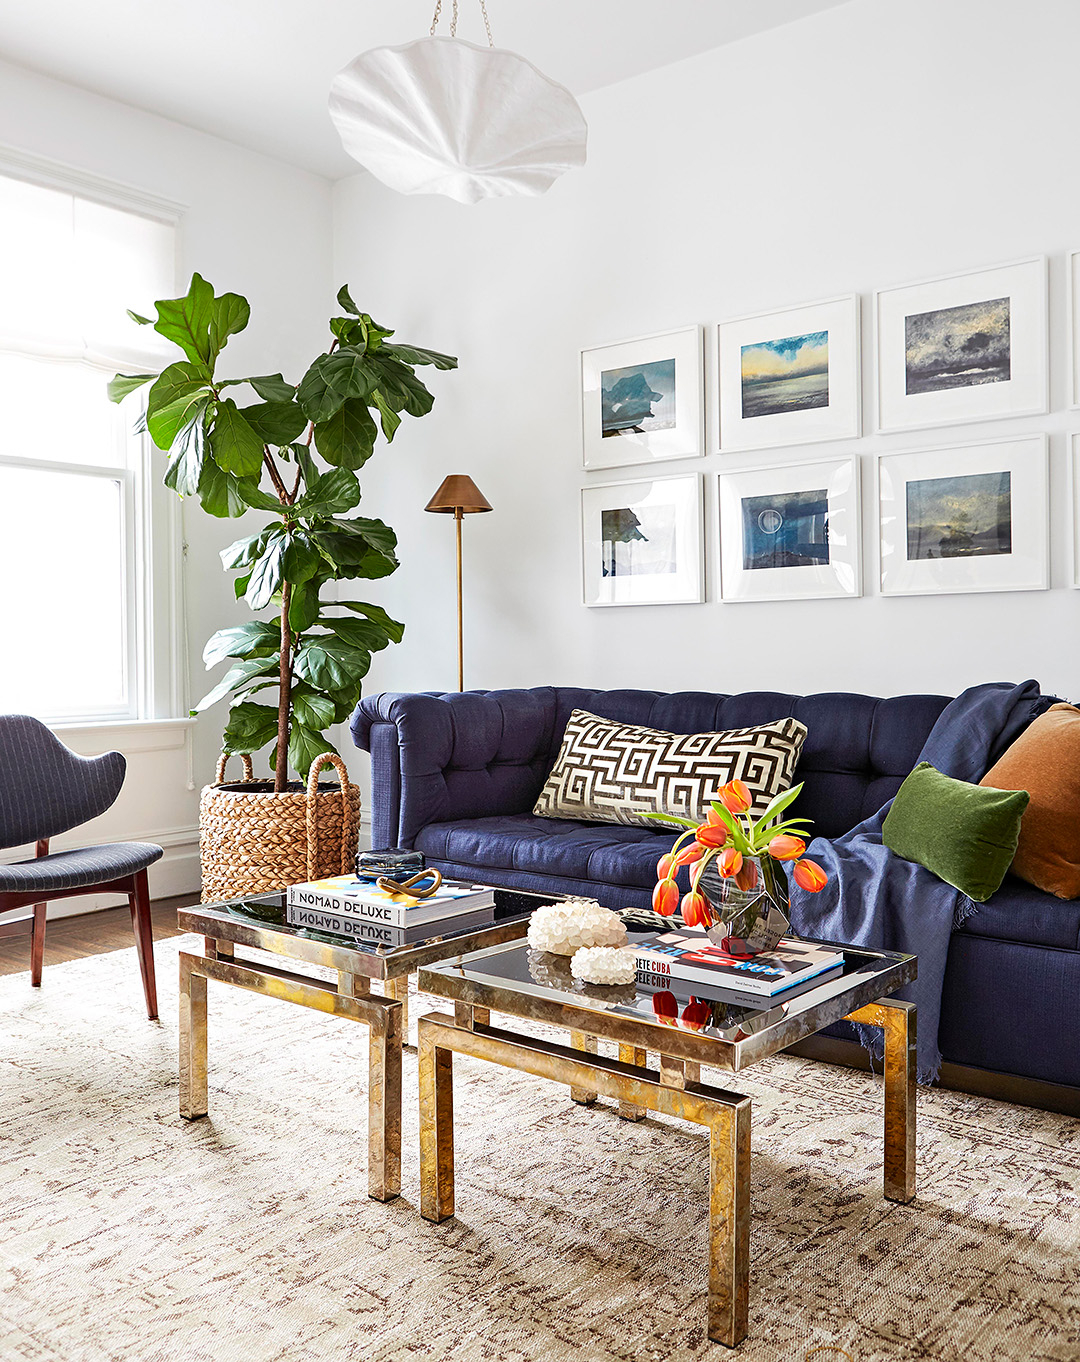 Living Room Design Ideas Small Spaces: 15 Ideas How To Upgrade And Improve Small Living Room Set